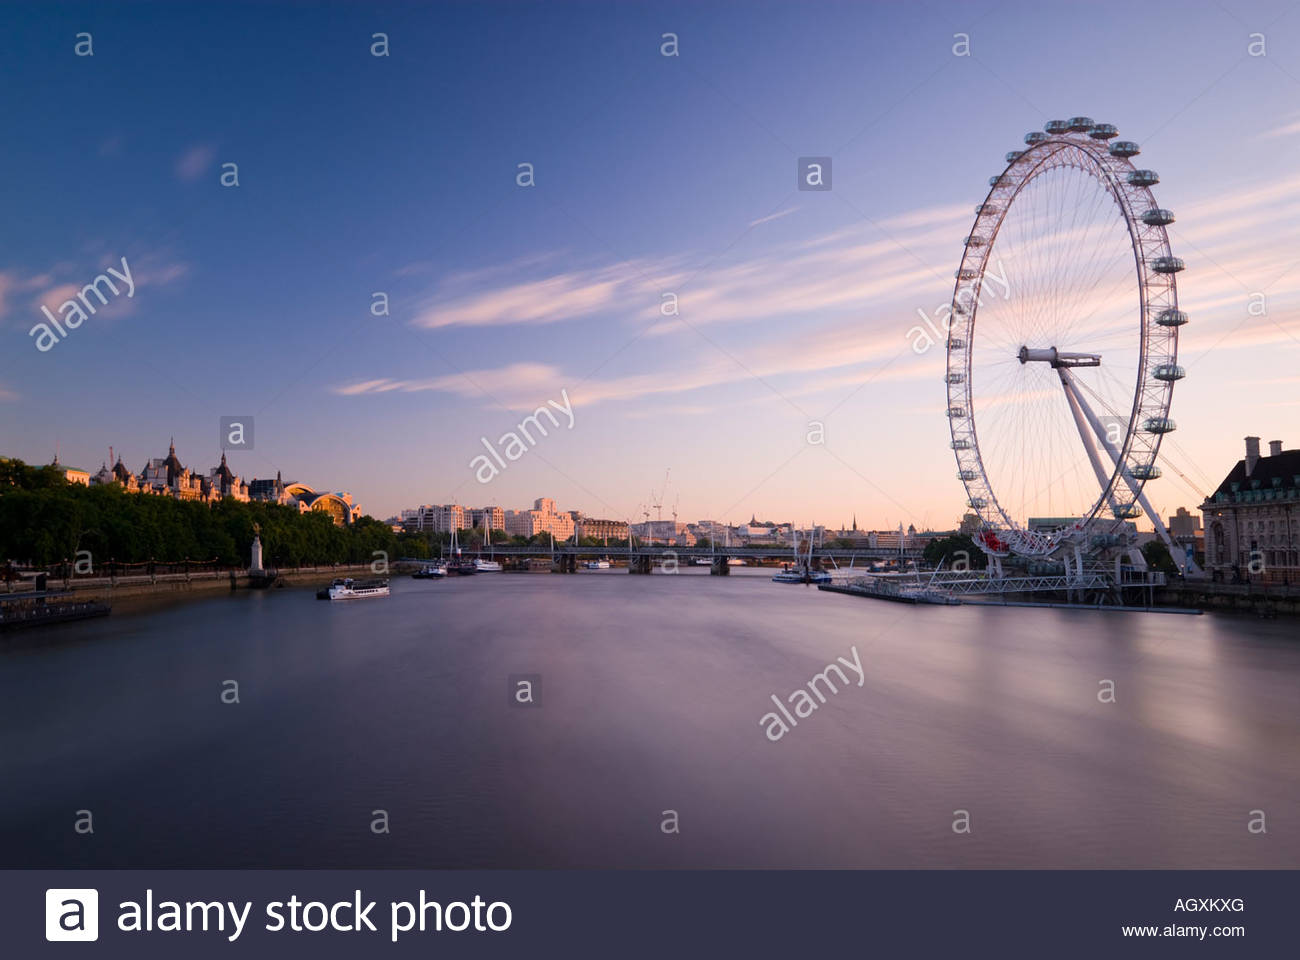 The London Eye and the river Thames at sunrise, London, England. - Stock Image